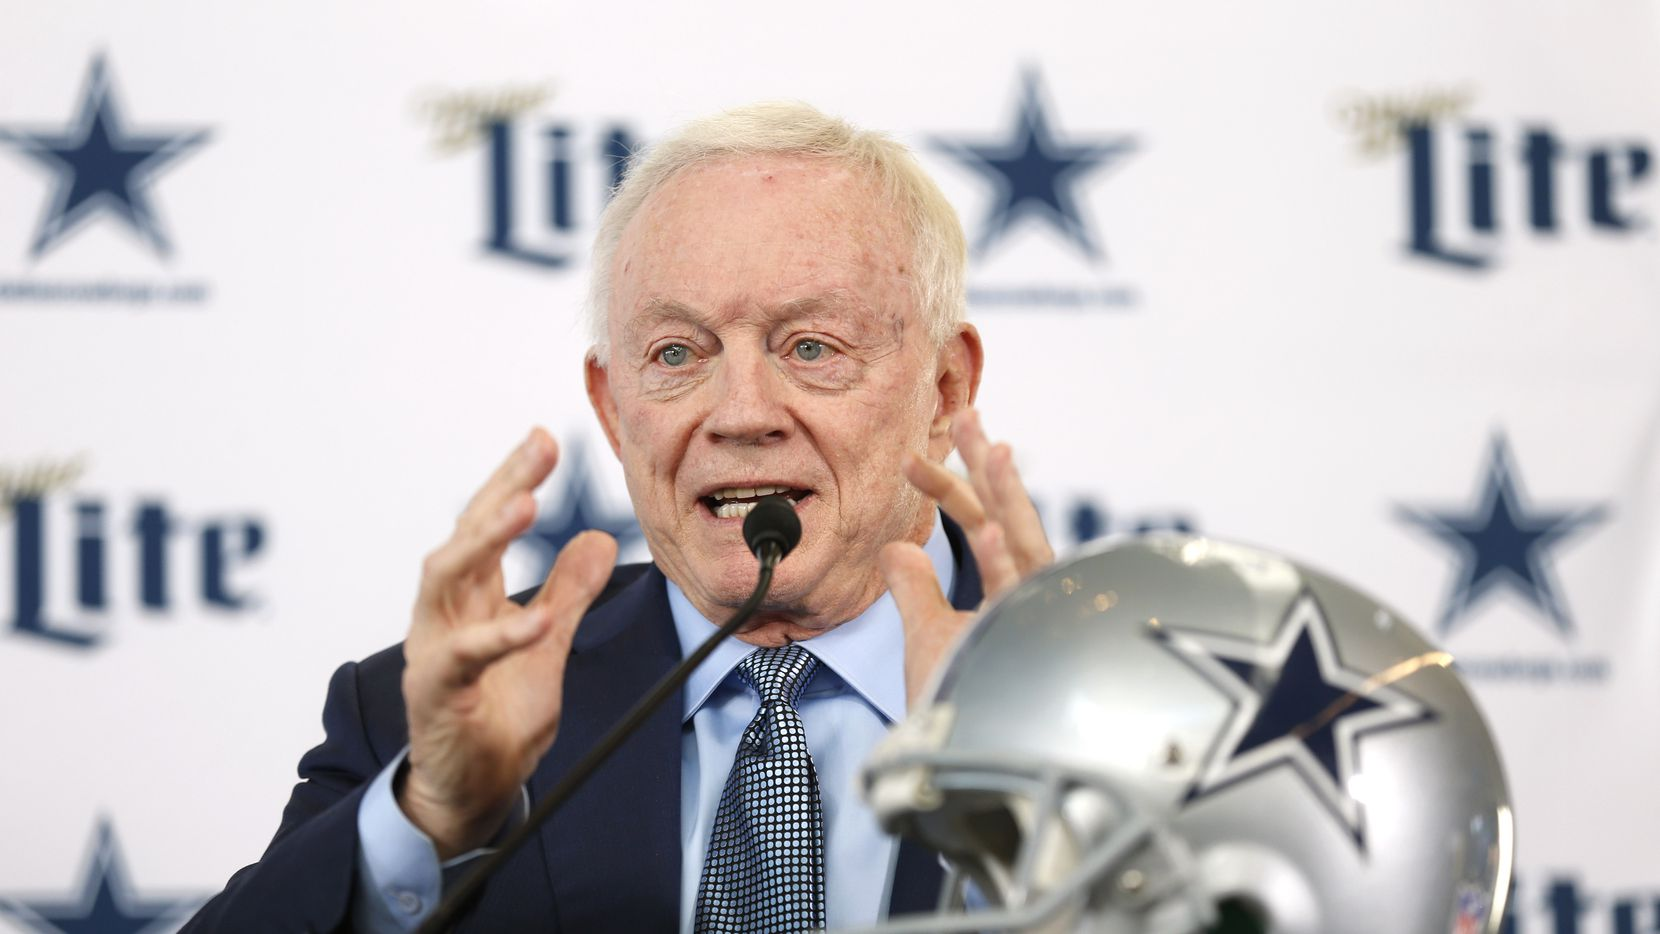 Dallas Cowboys owner and general manager Jerry Jones speaks during a press conference announcing Dallas Cowboys new head coach Mike McCarthy in the Ford Center at The Star in Frisco, on Wednesday, January 8, 2020.